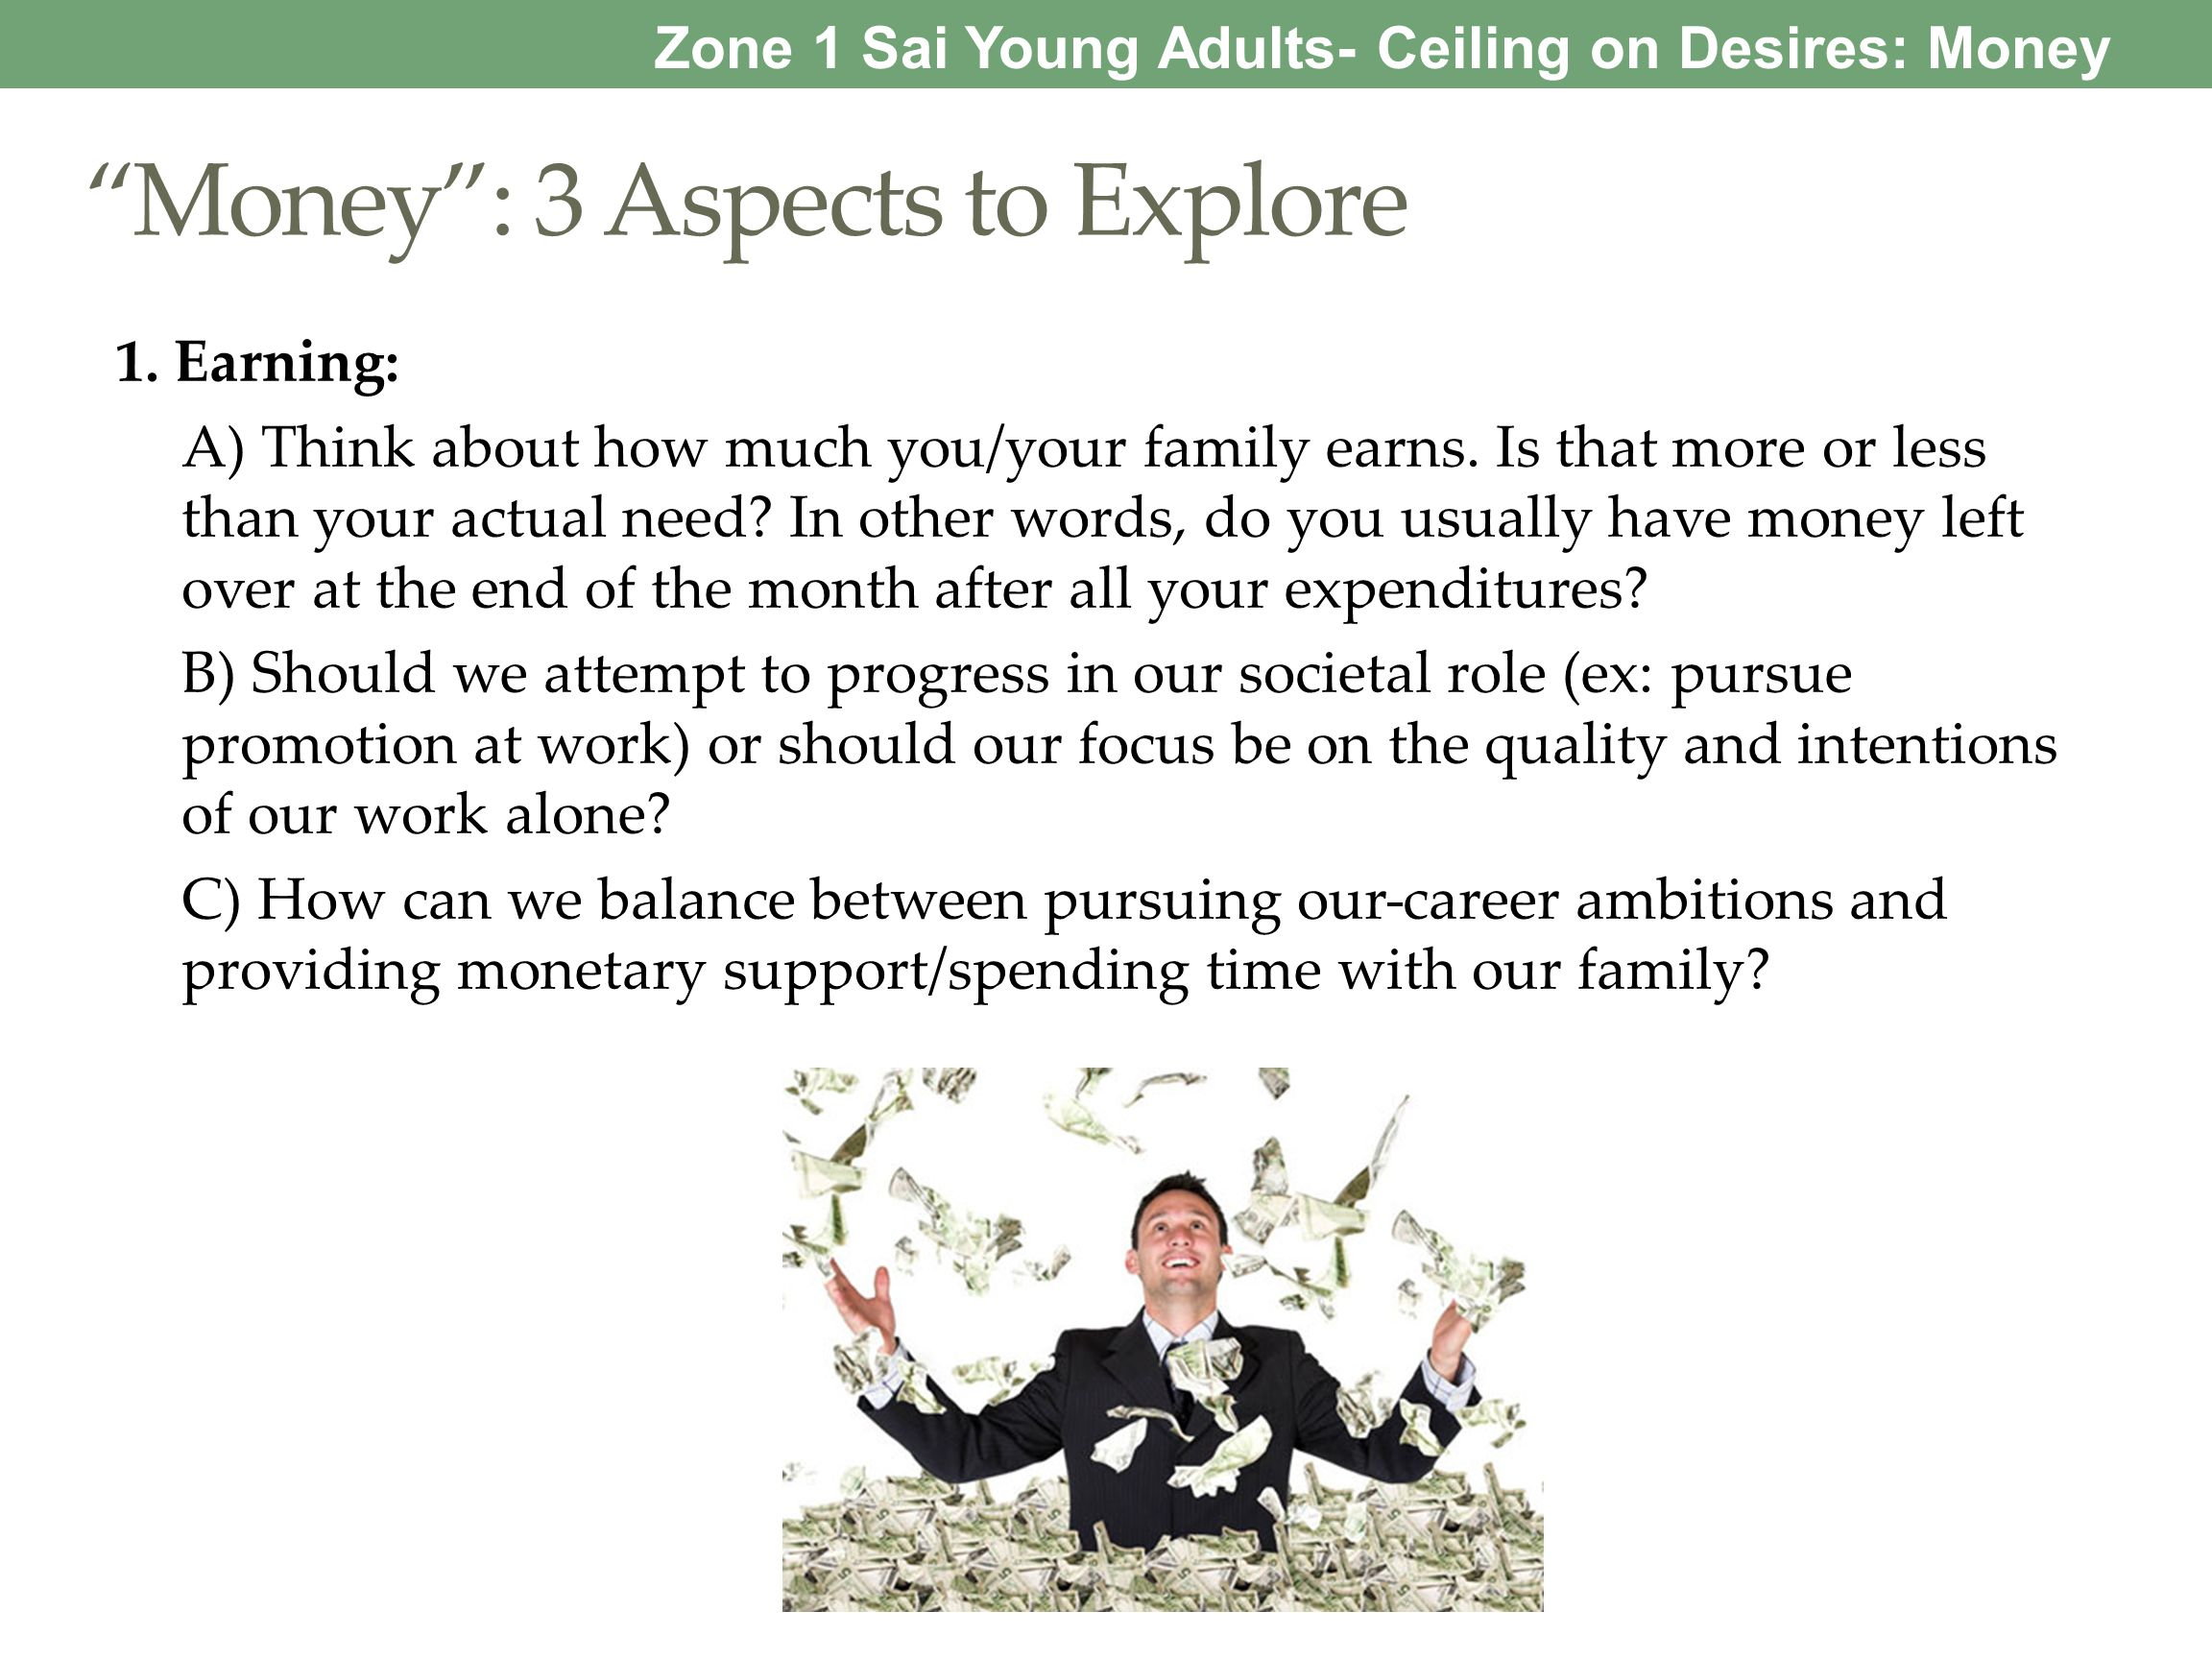 Money : 3 Aspects to Explore